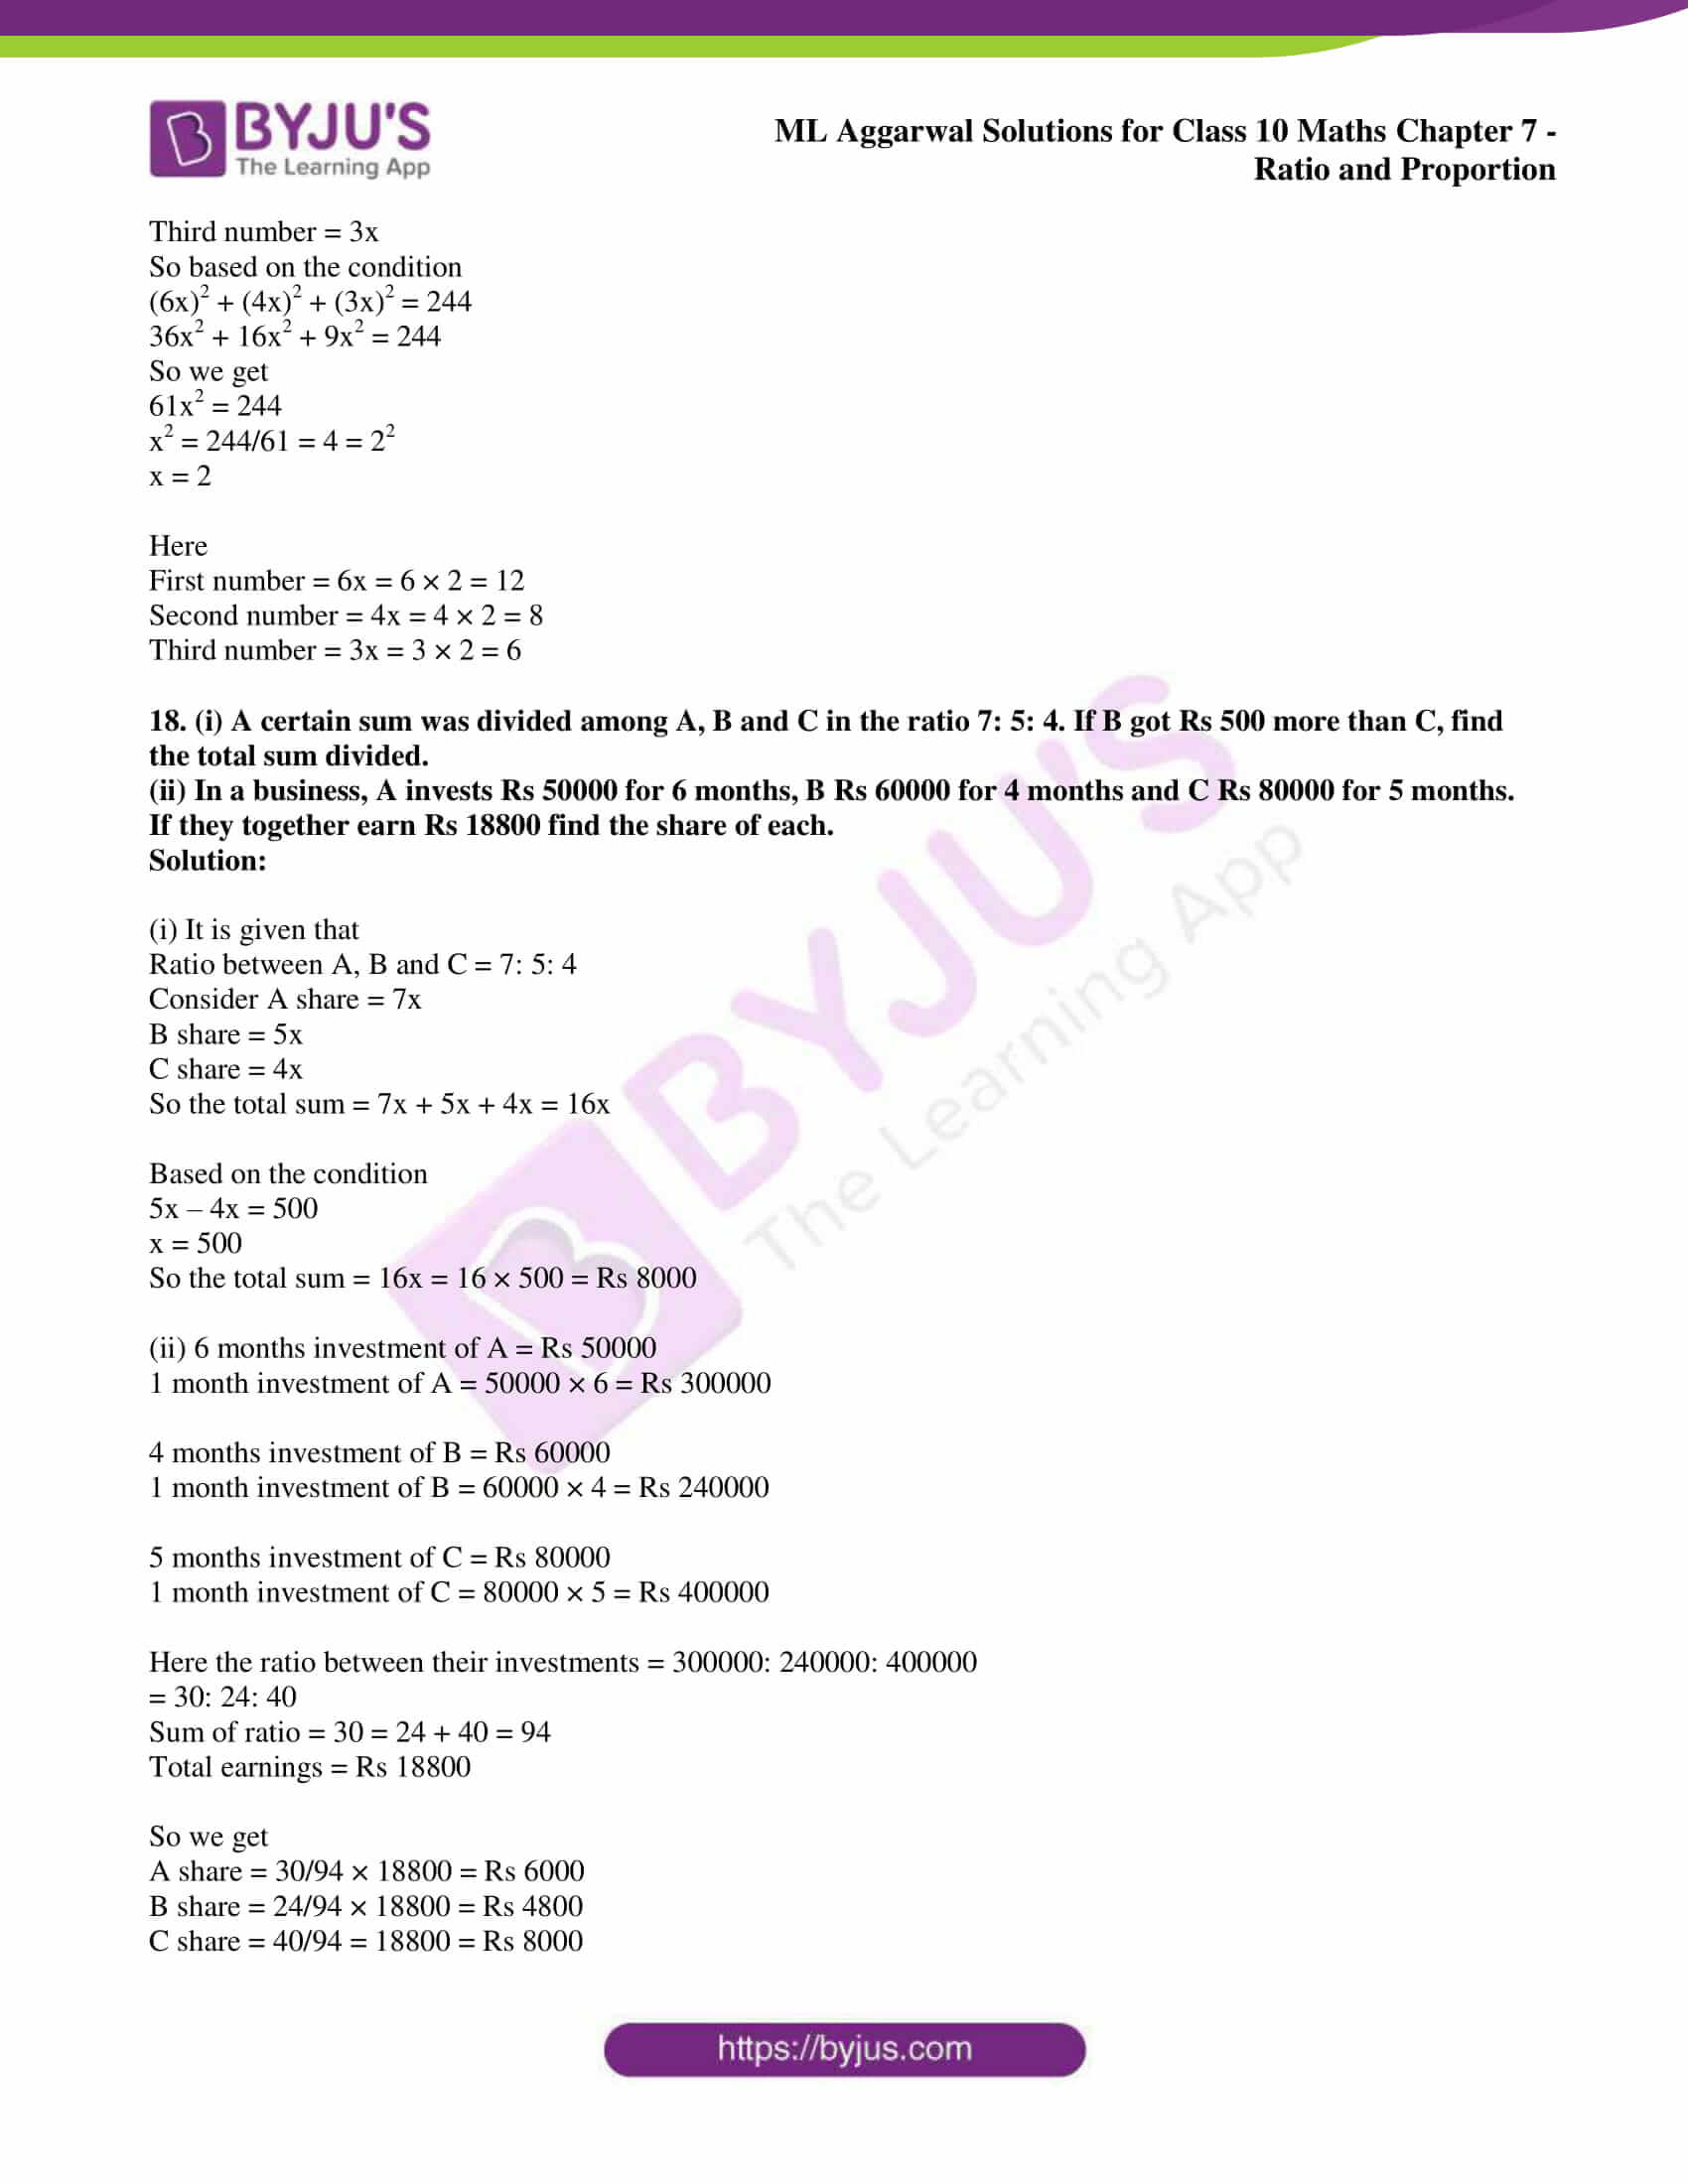 ml aggarwal solutions for class 10 maths chapter 7 11